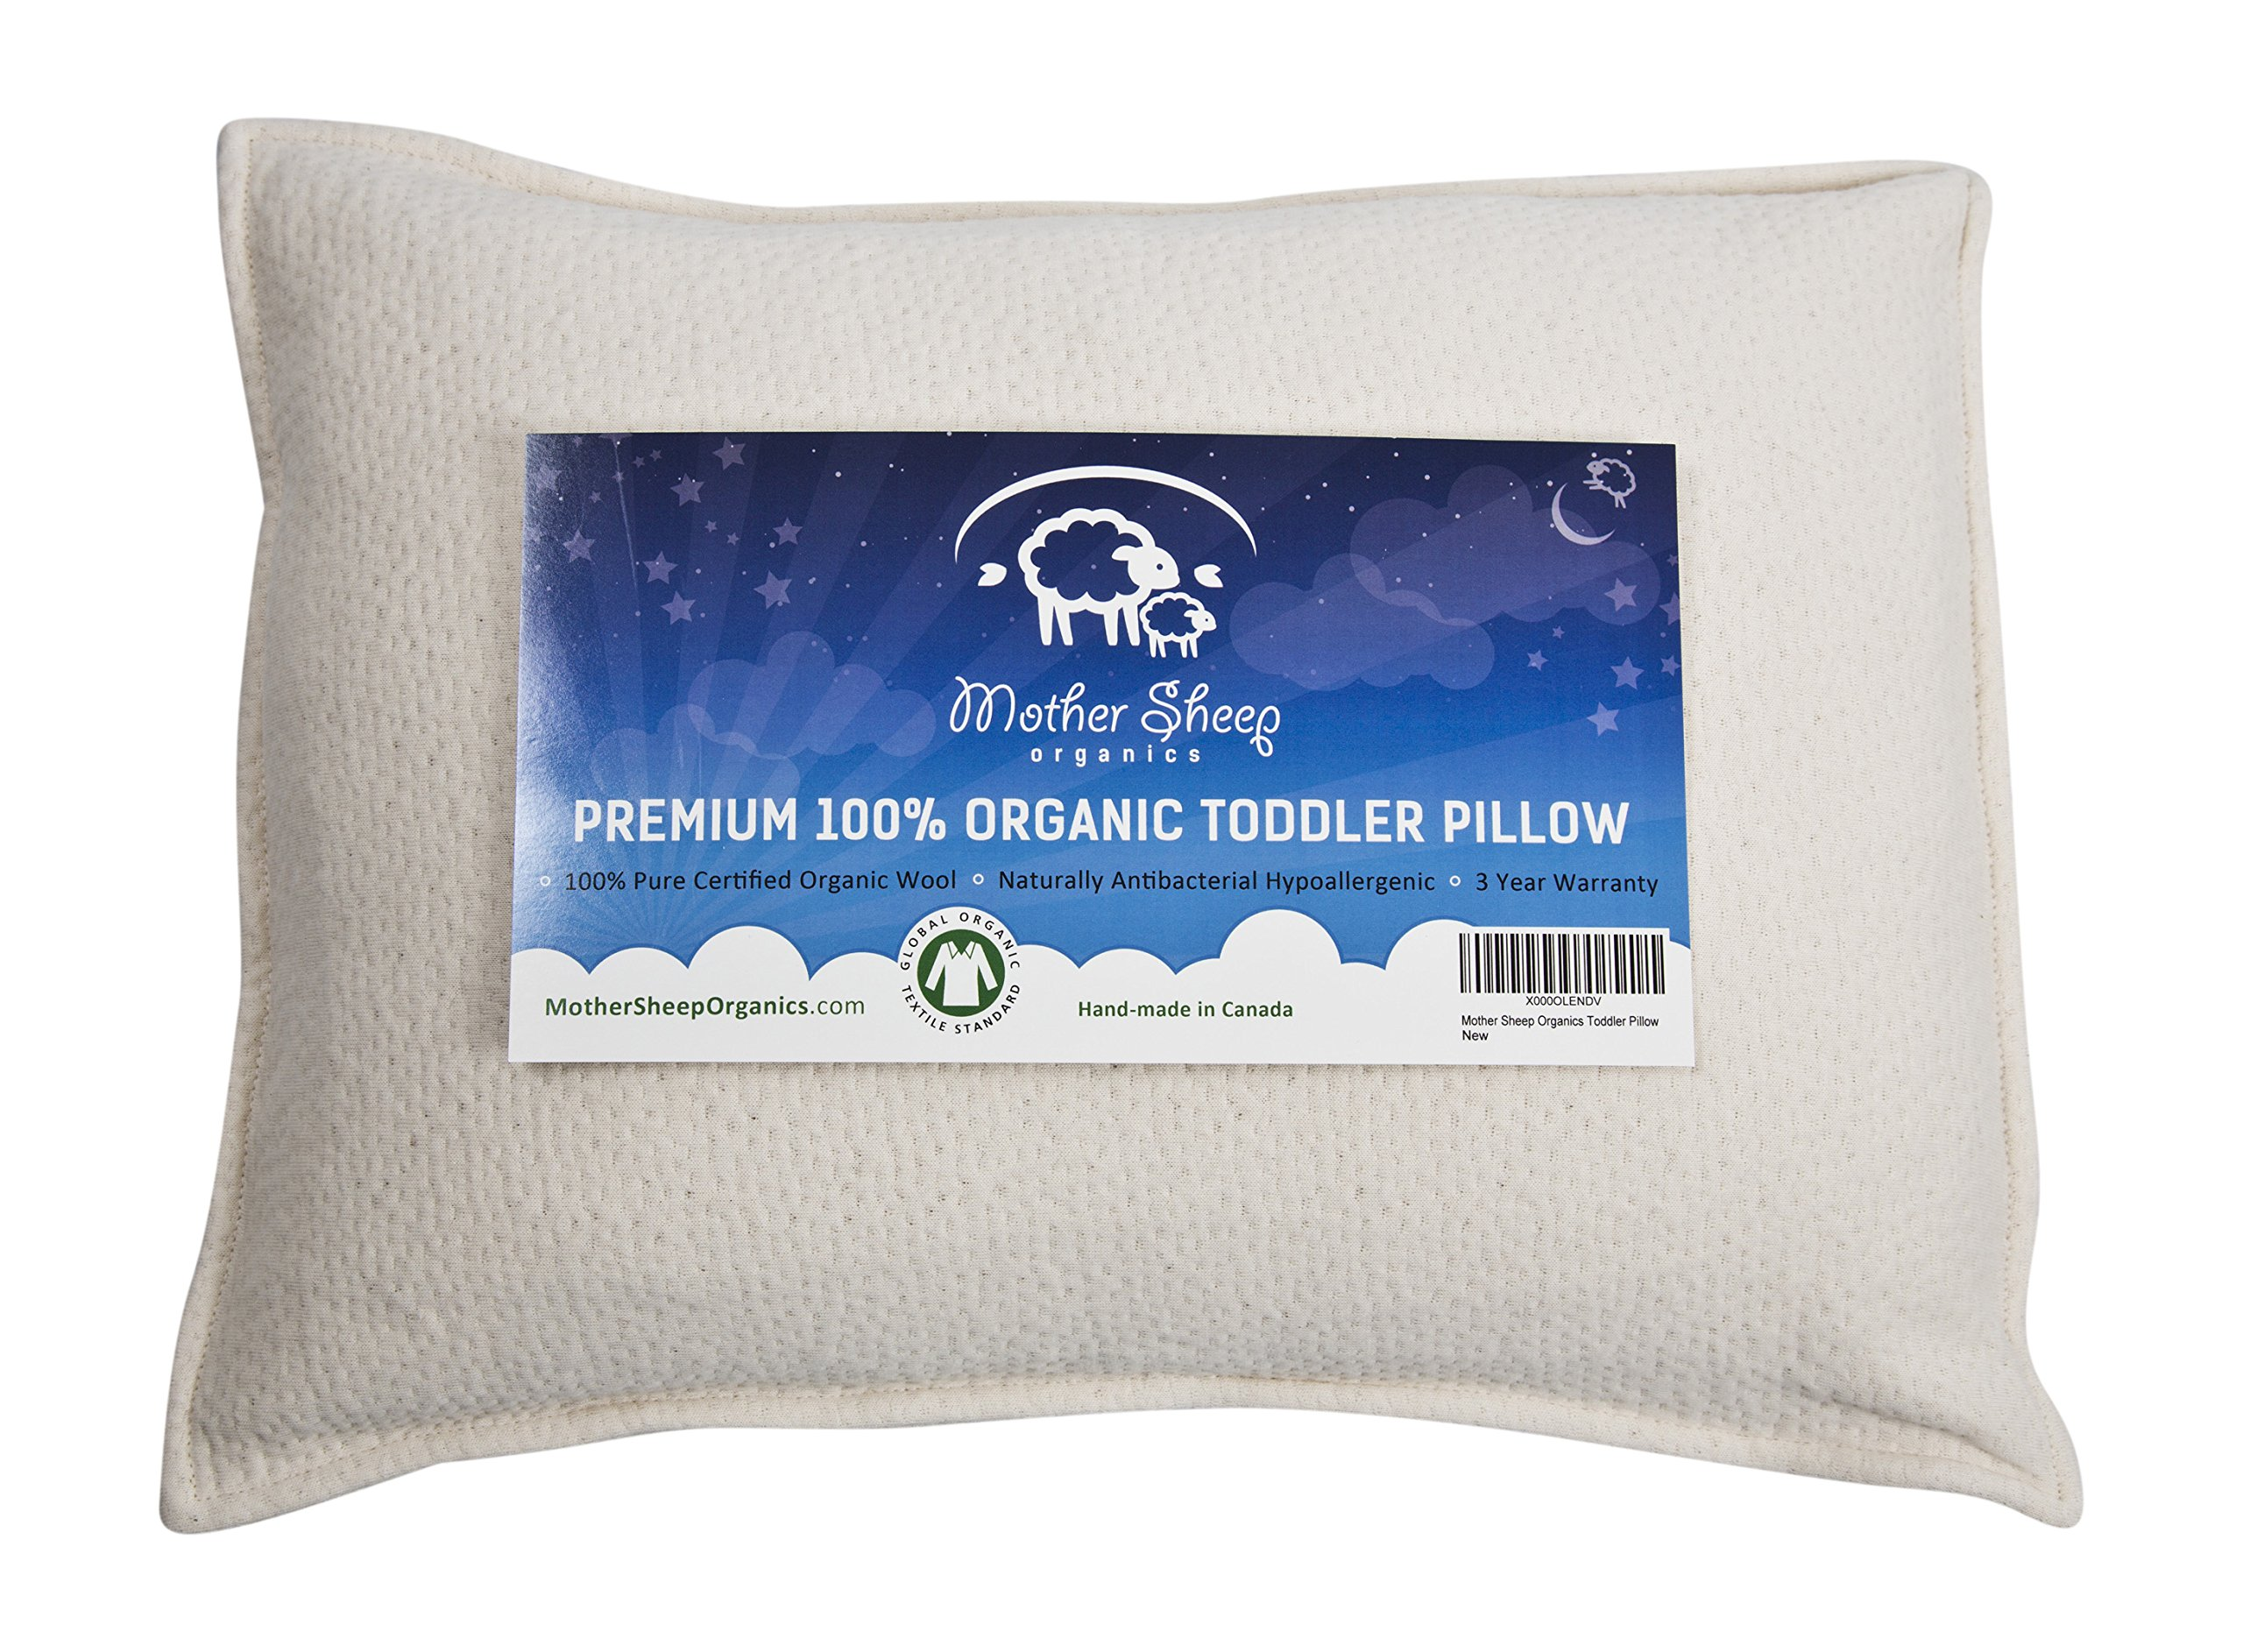 Organic Wool Toddler Pillow, All Natural &100% GOTS Certified Pure Organic, Wool 'Pearls' Filling, Natural Antibacterial & Hypoallergenic, 14x19, Best First Pillow for Toddlers &Kids